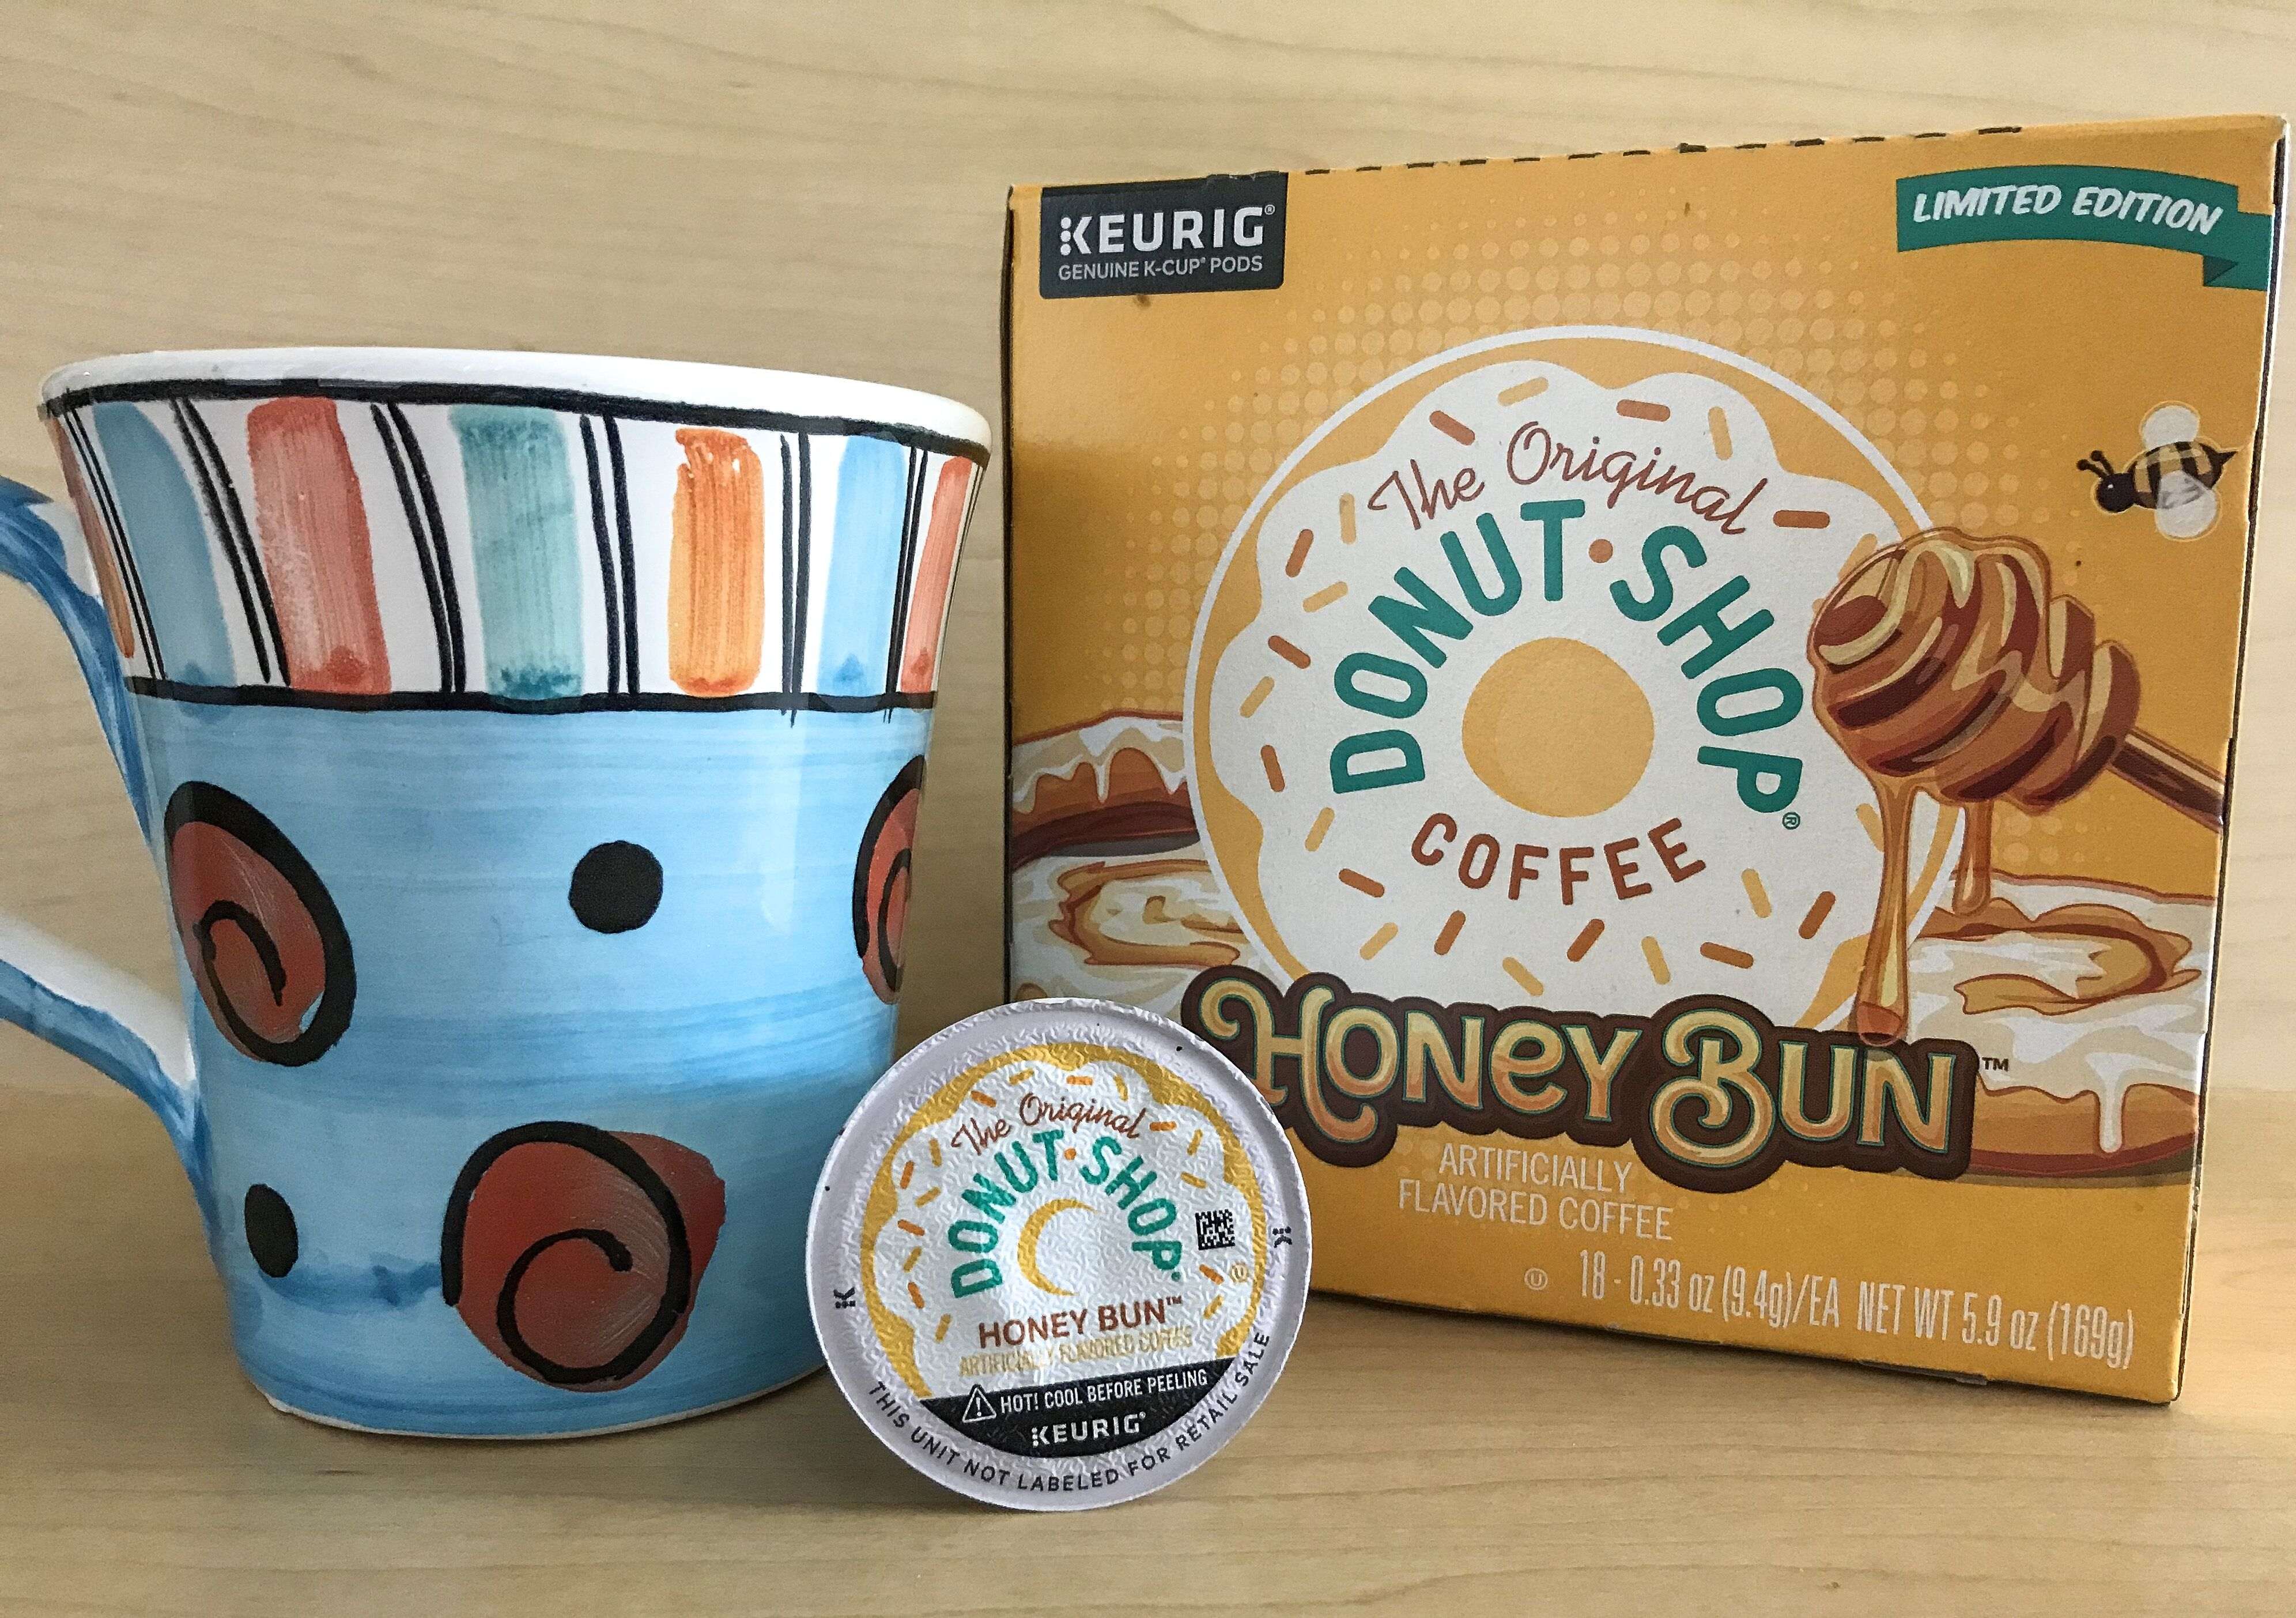 Original Donut Shop Honey Bun coffee, a touch of sweetness in your cup